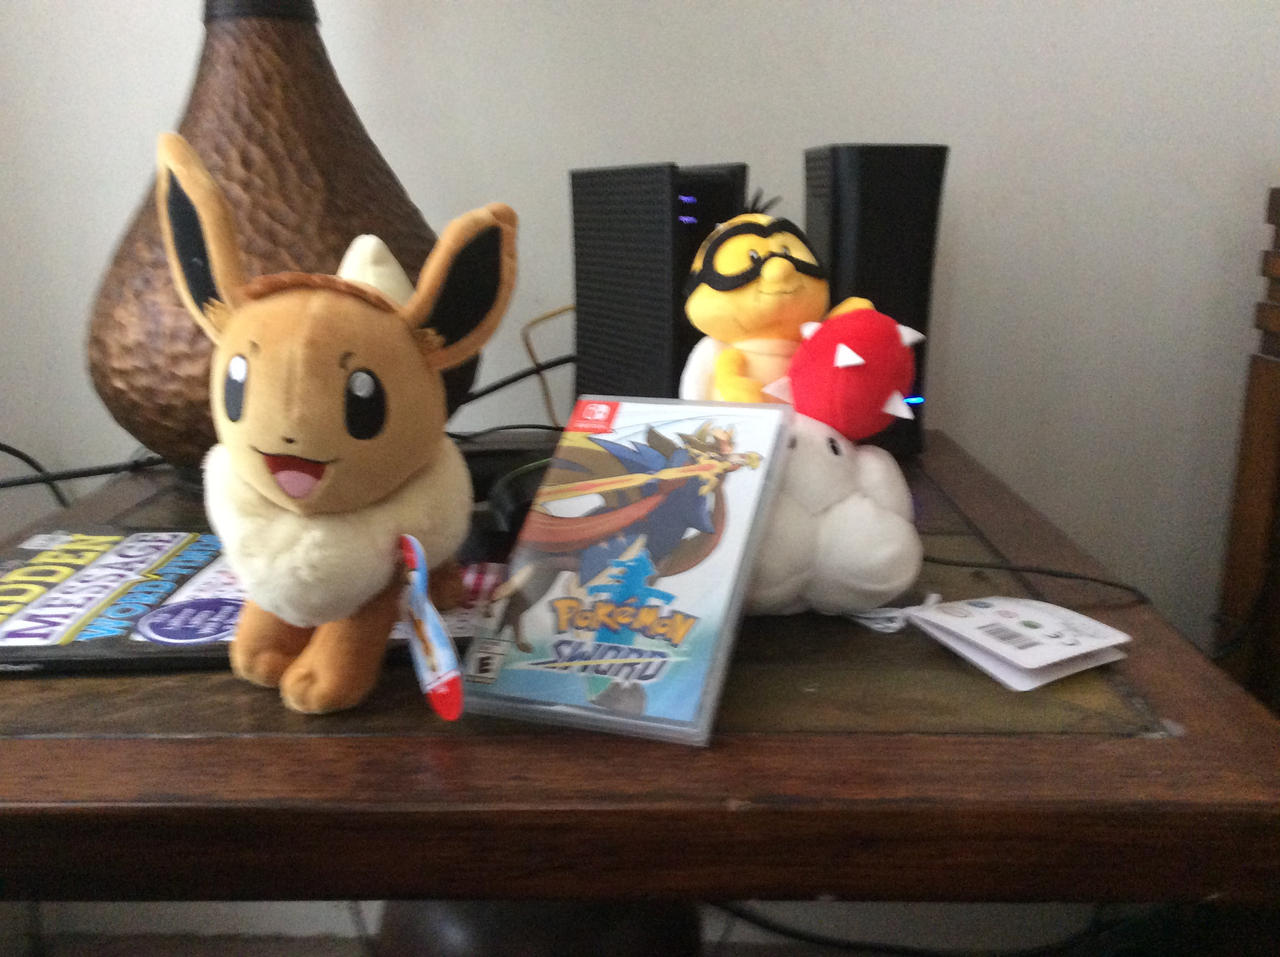 Two New Plushies And A Video Game By Ilovemixels On Deviantart